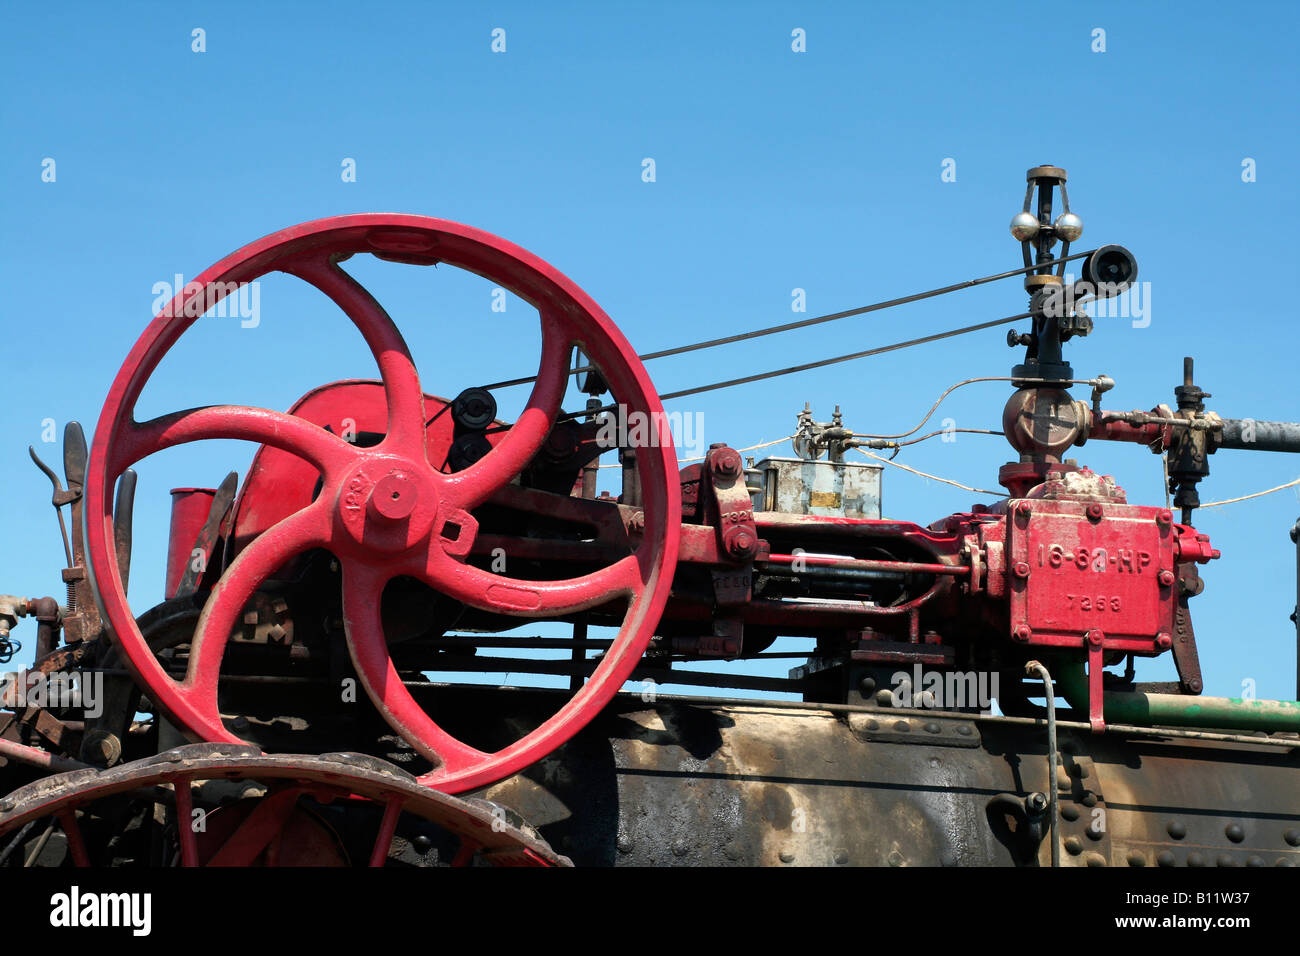 Steam engine - Stock Image